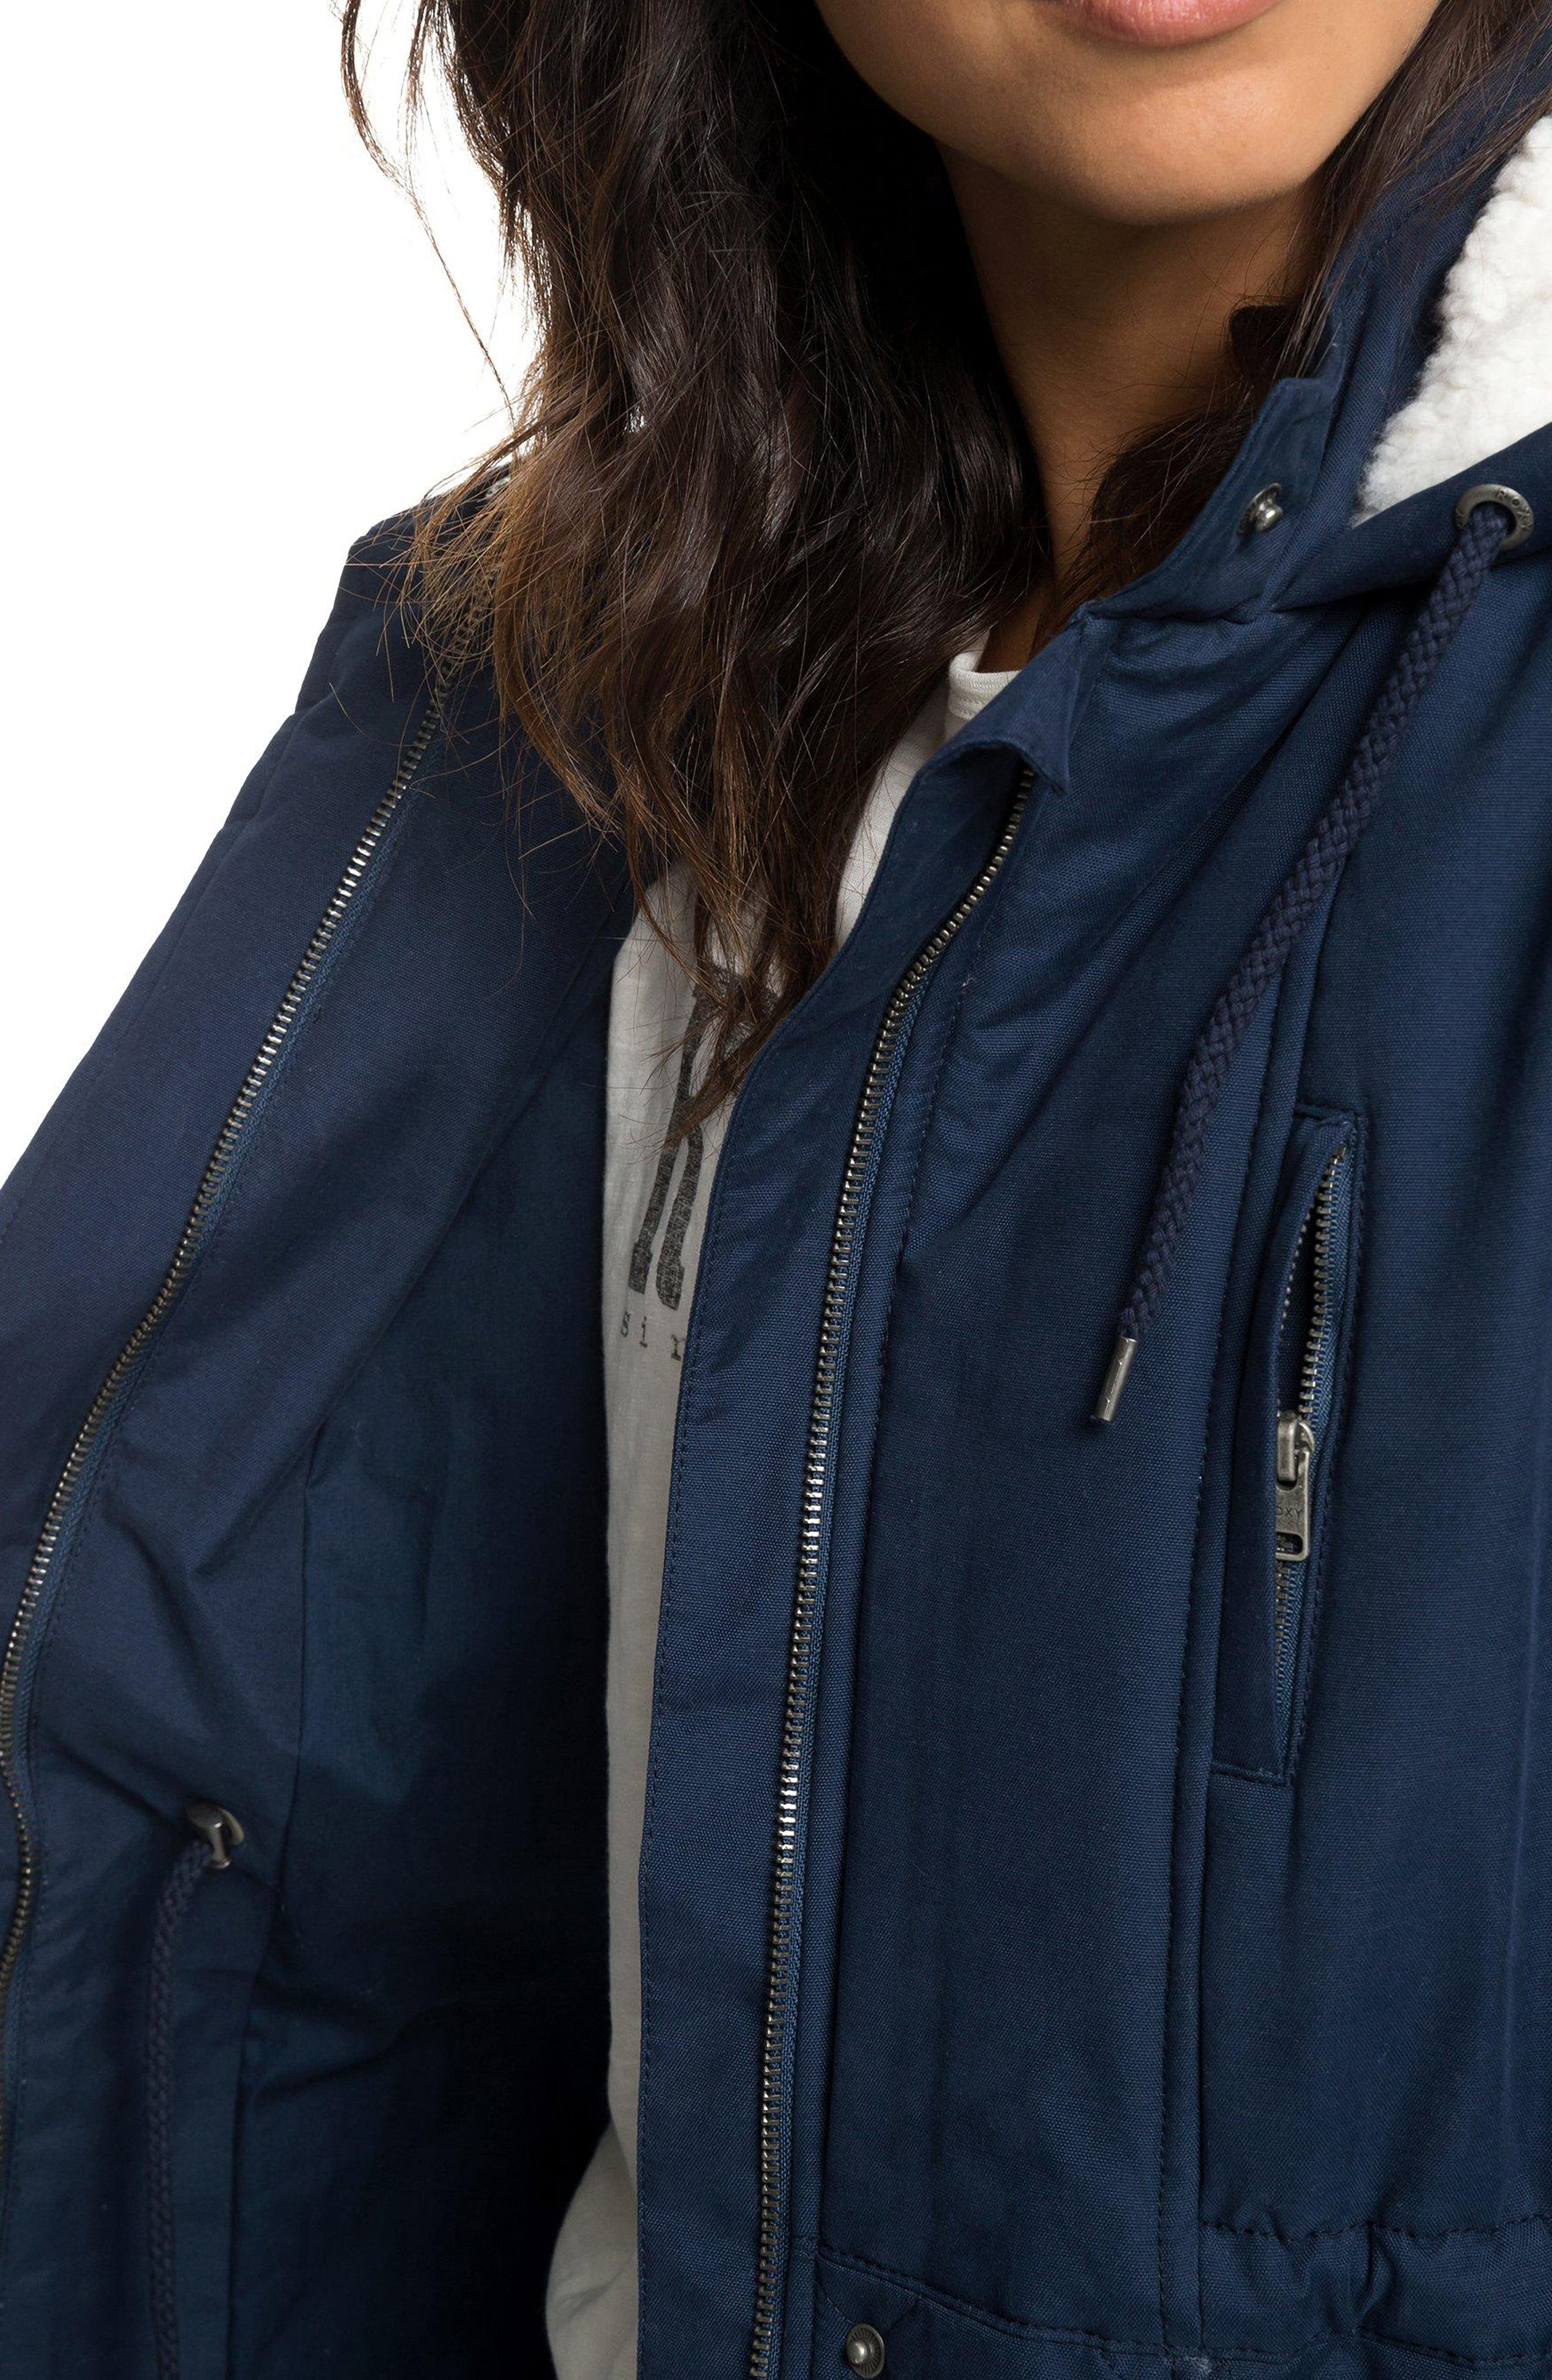 Slalom Chic Faux Shearling Trim Waterproof Parka,                             Alternate thumbnail 9, color,                             DRESS BLUES